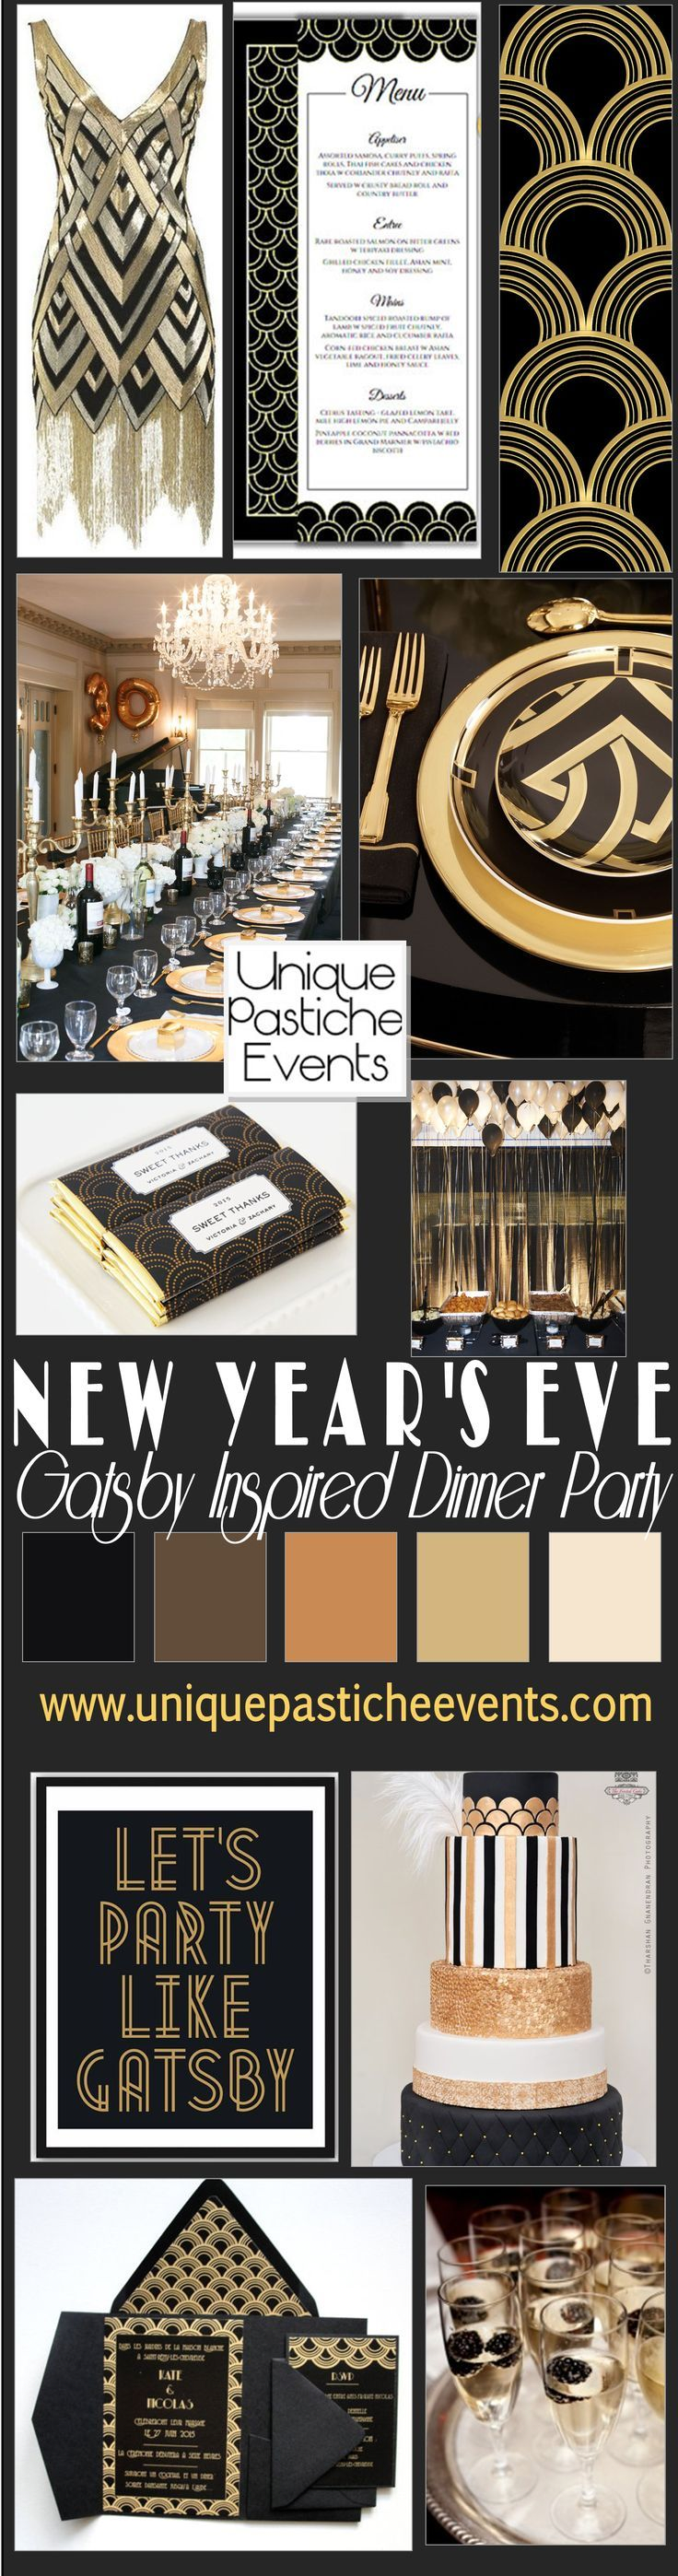 Gatsby Inspired New Year's Eve Dinner Party Ideas